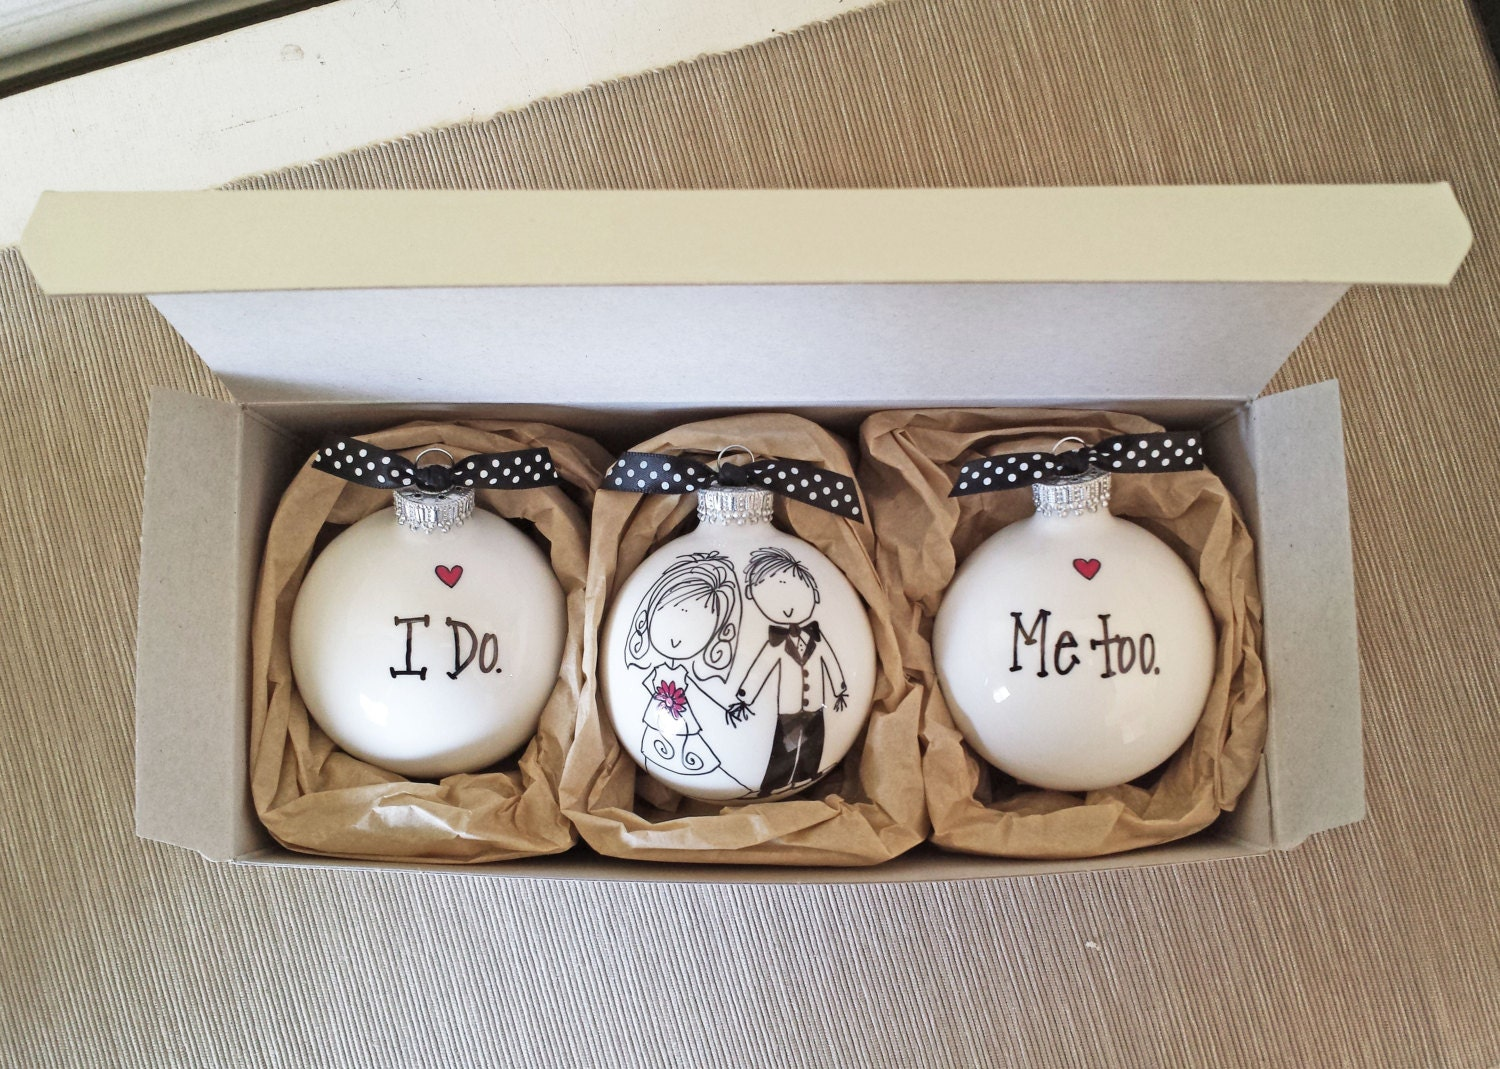 Unique Gifts Wedding: Wedding Ornaments Keepsake Wedding Gift Personalized Wedding